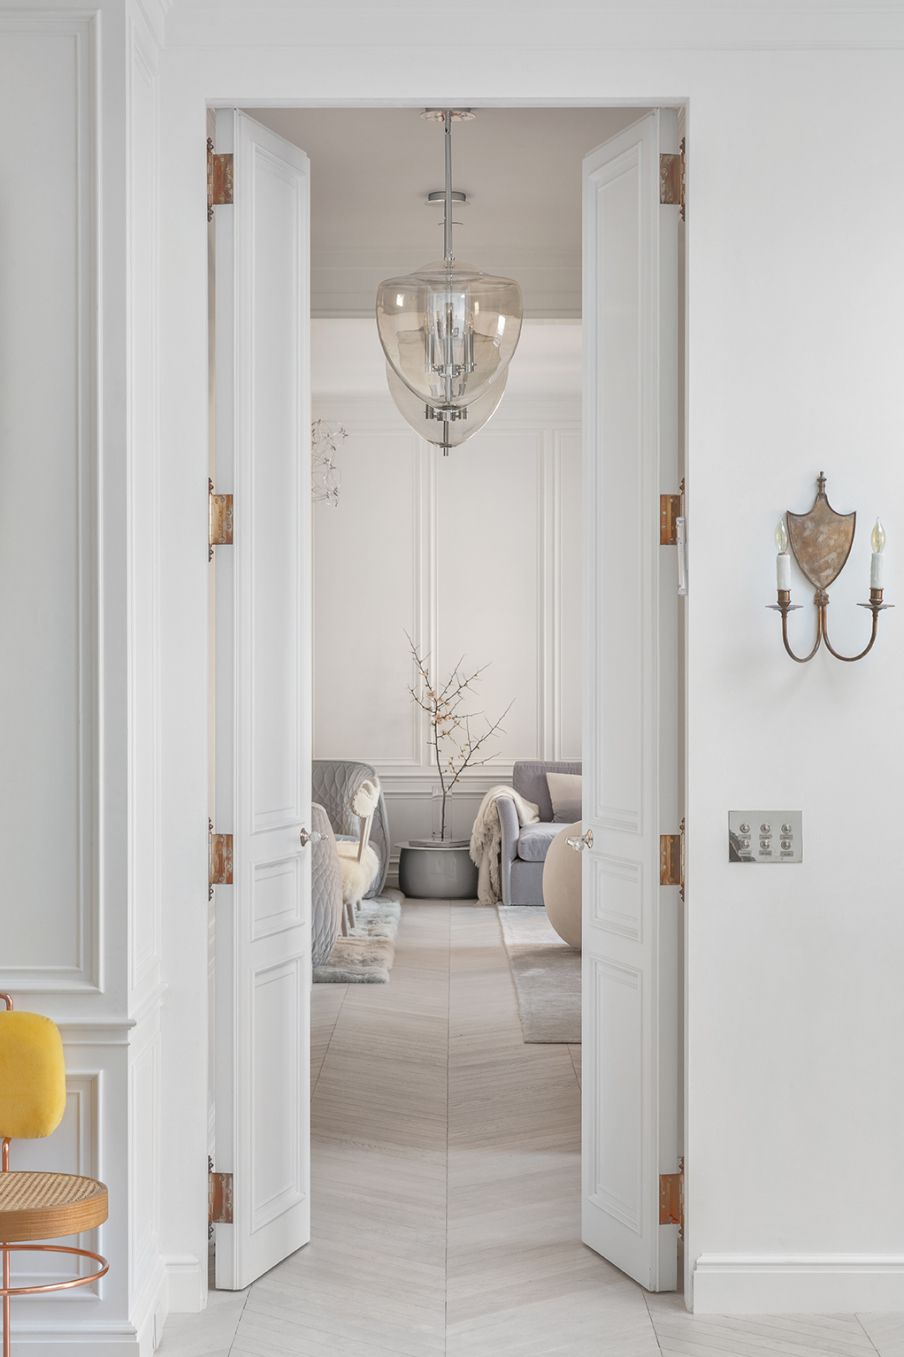 Two tall white doors that open up to a bedroom.